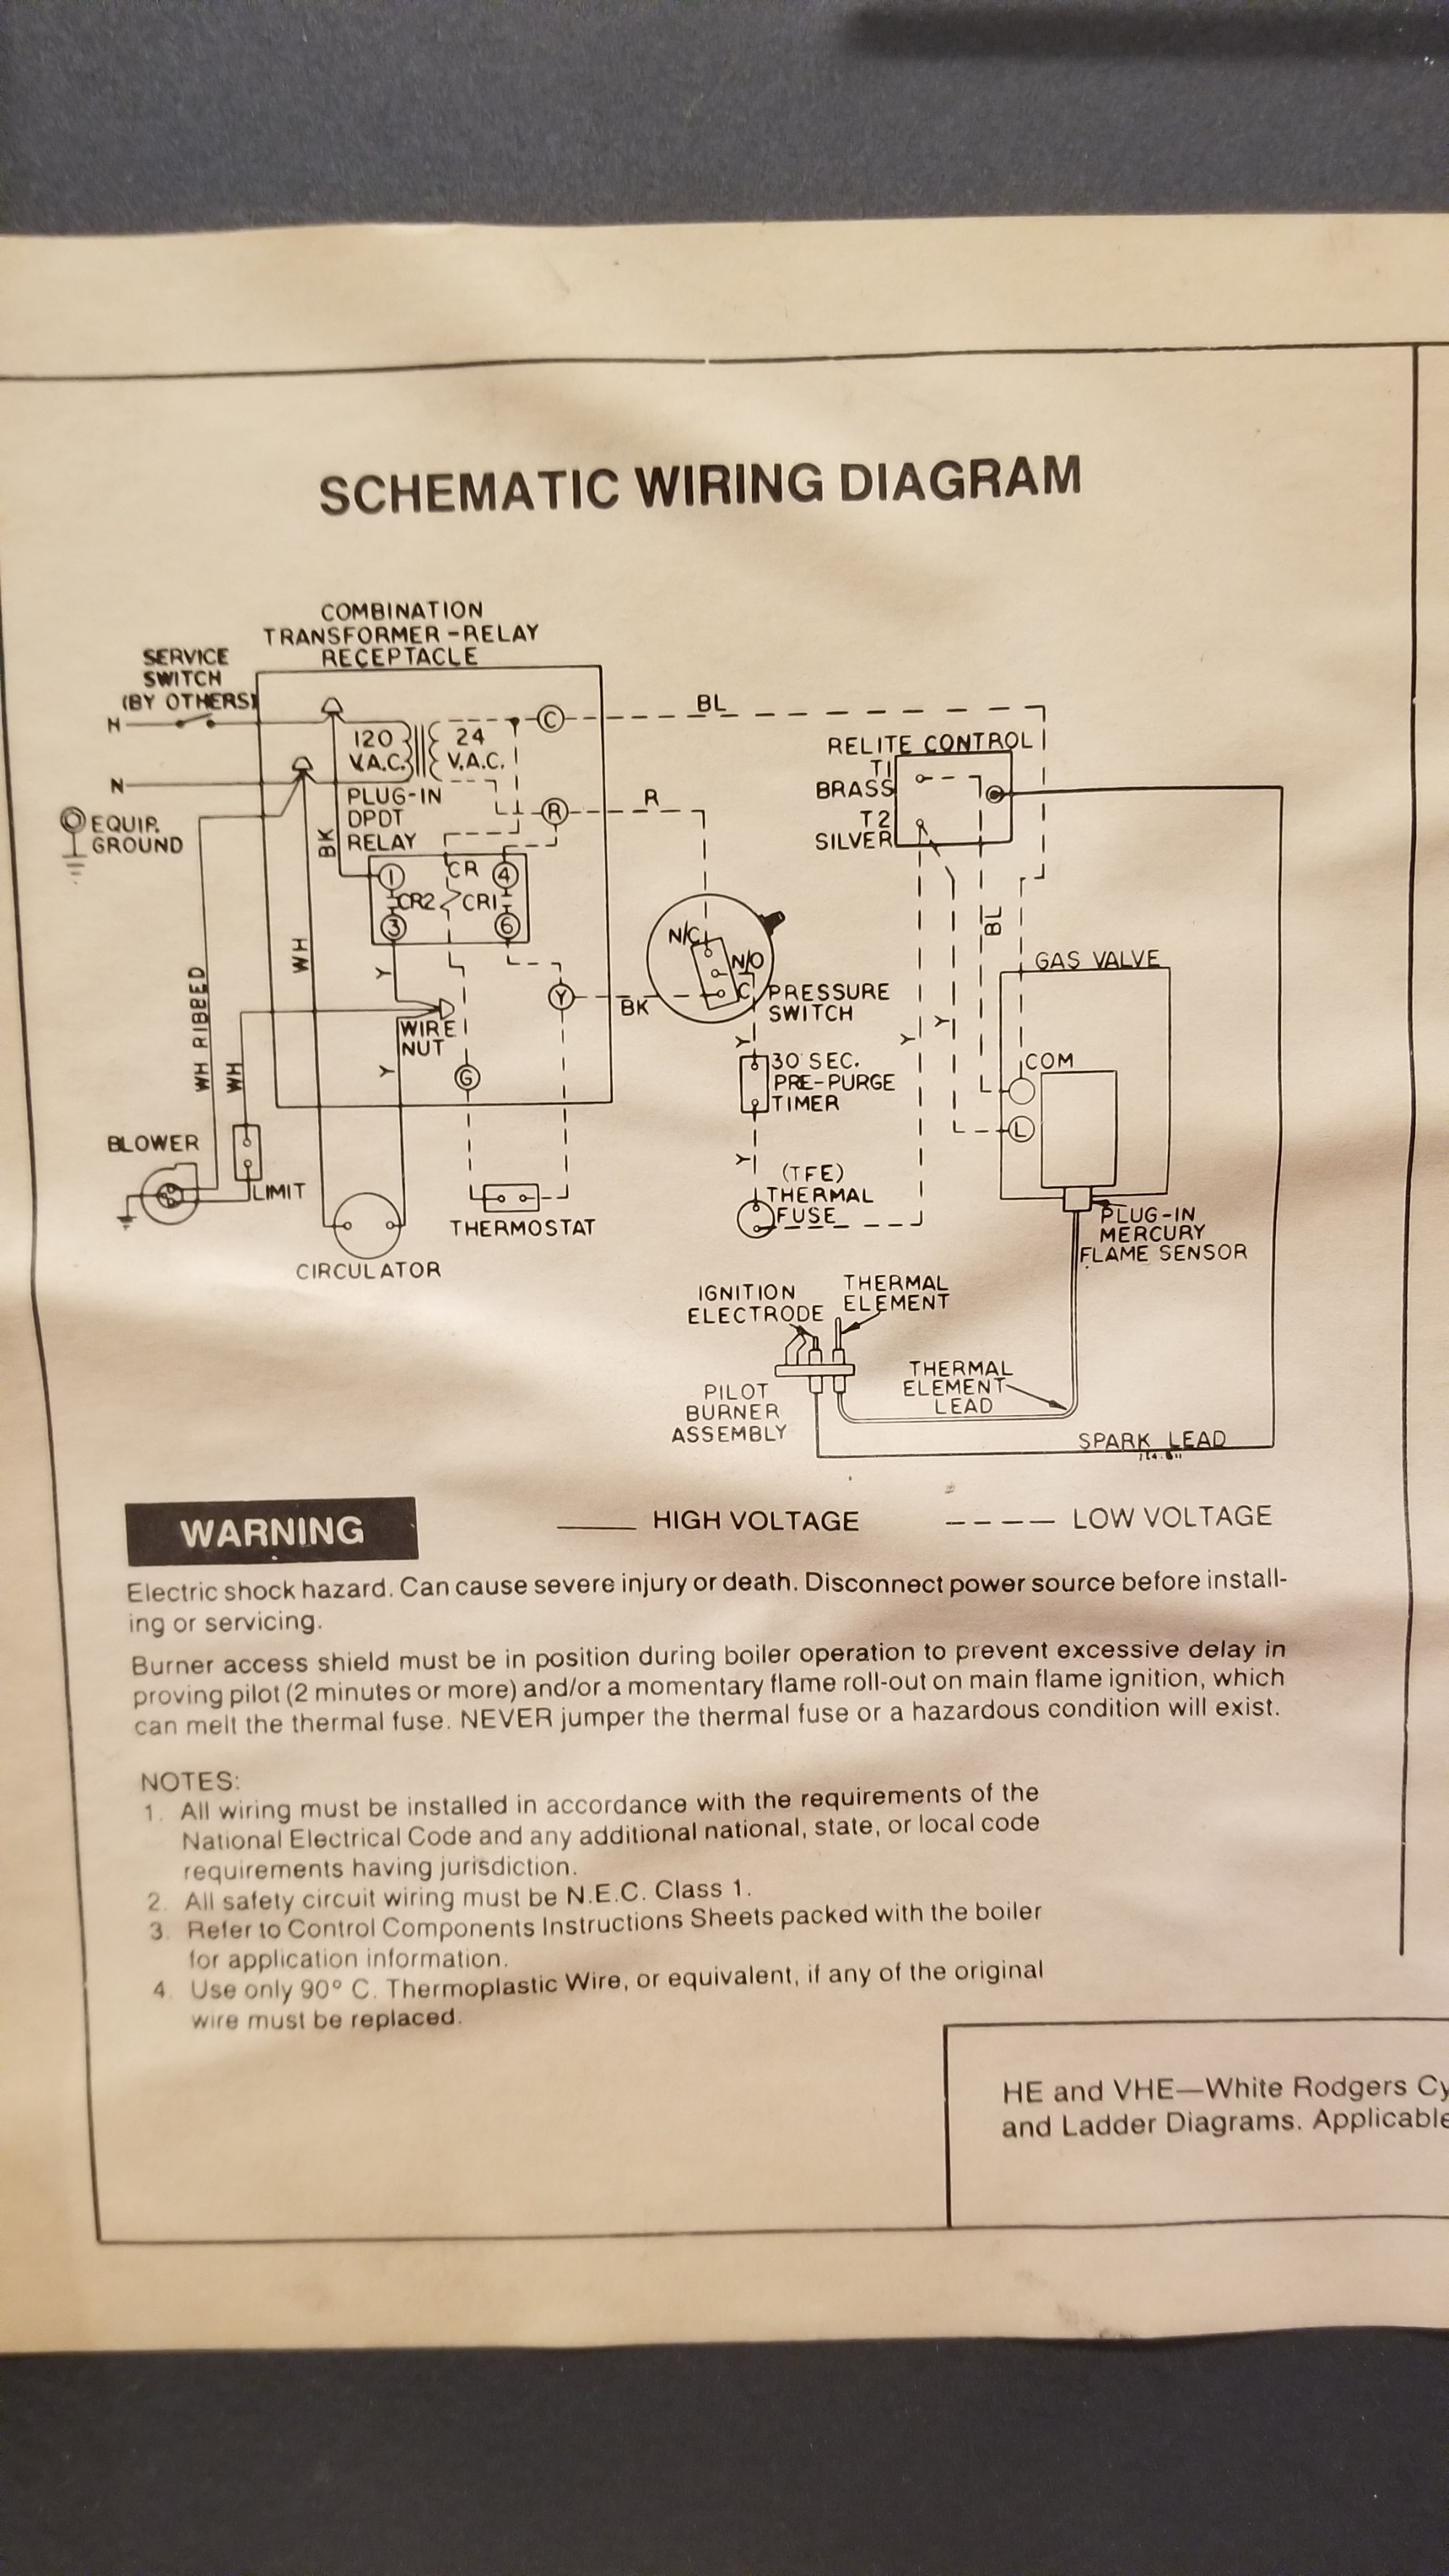 hight resolution of and this is one of the wiring diagrams from honeywell that seemed to match what i am trying to do eliminating the third zone valve and thermostat